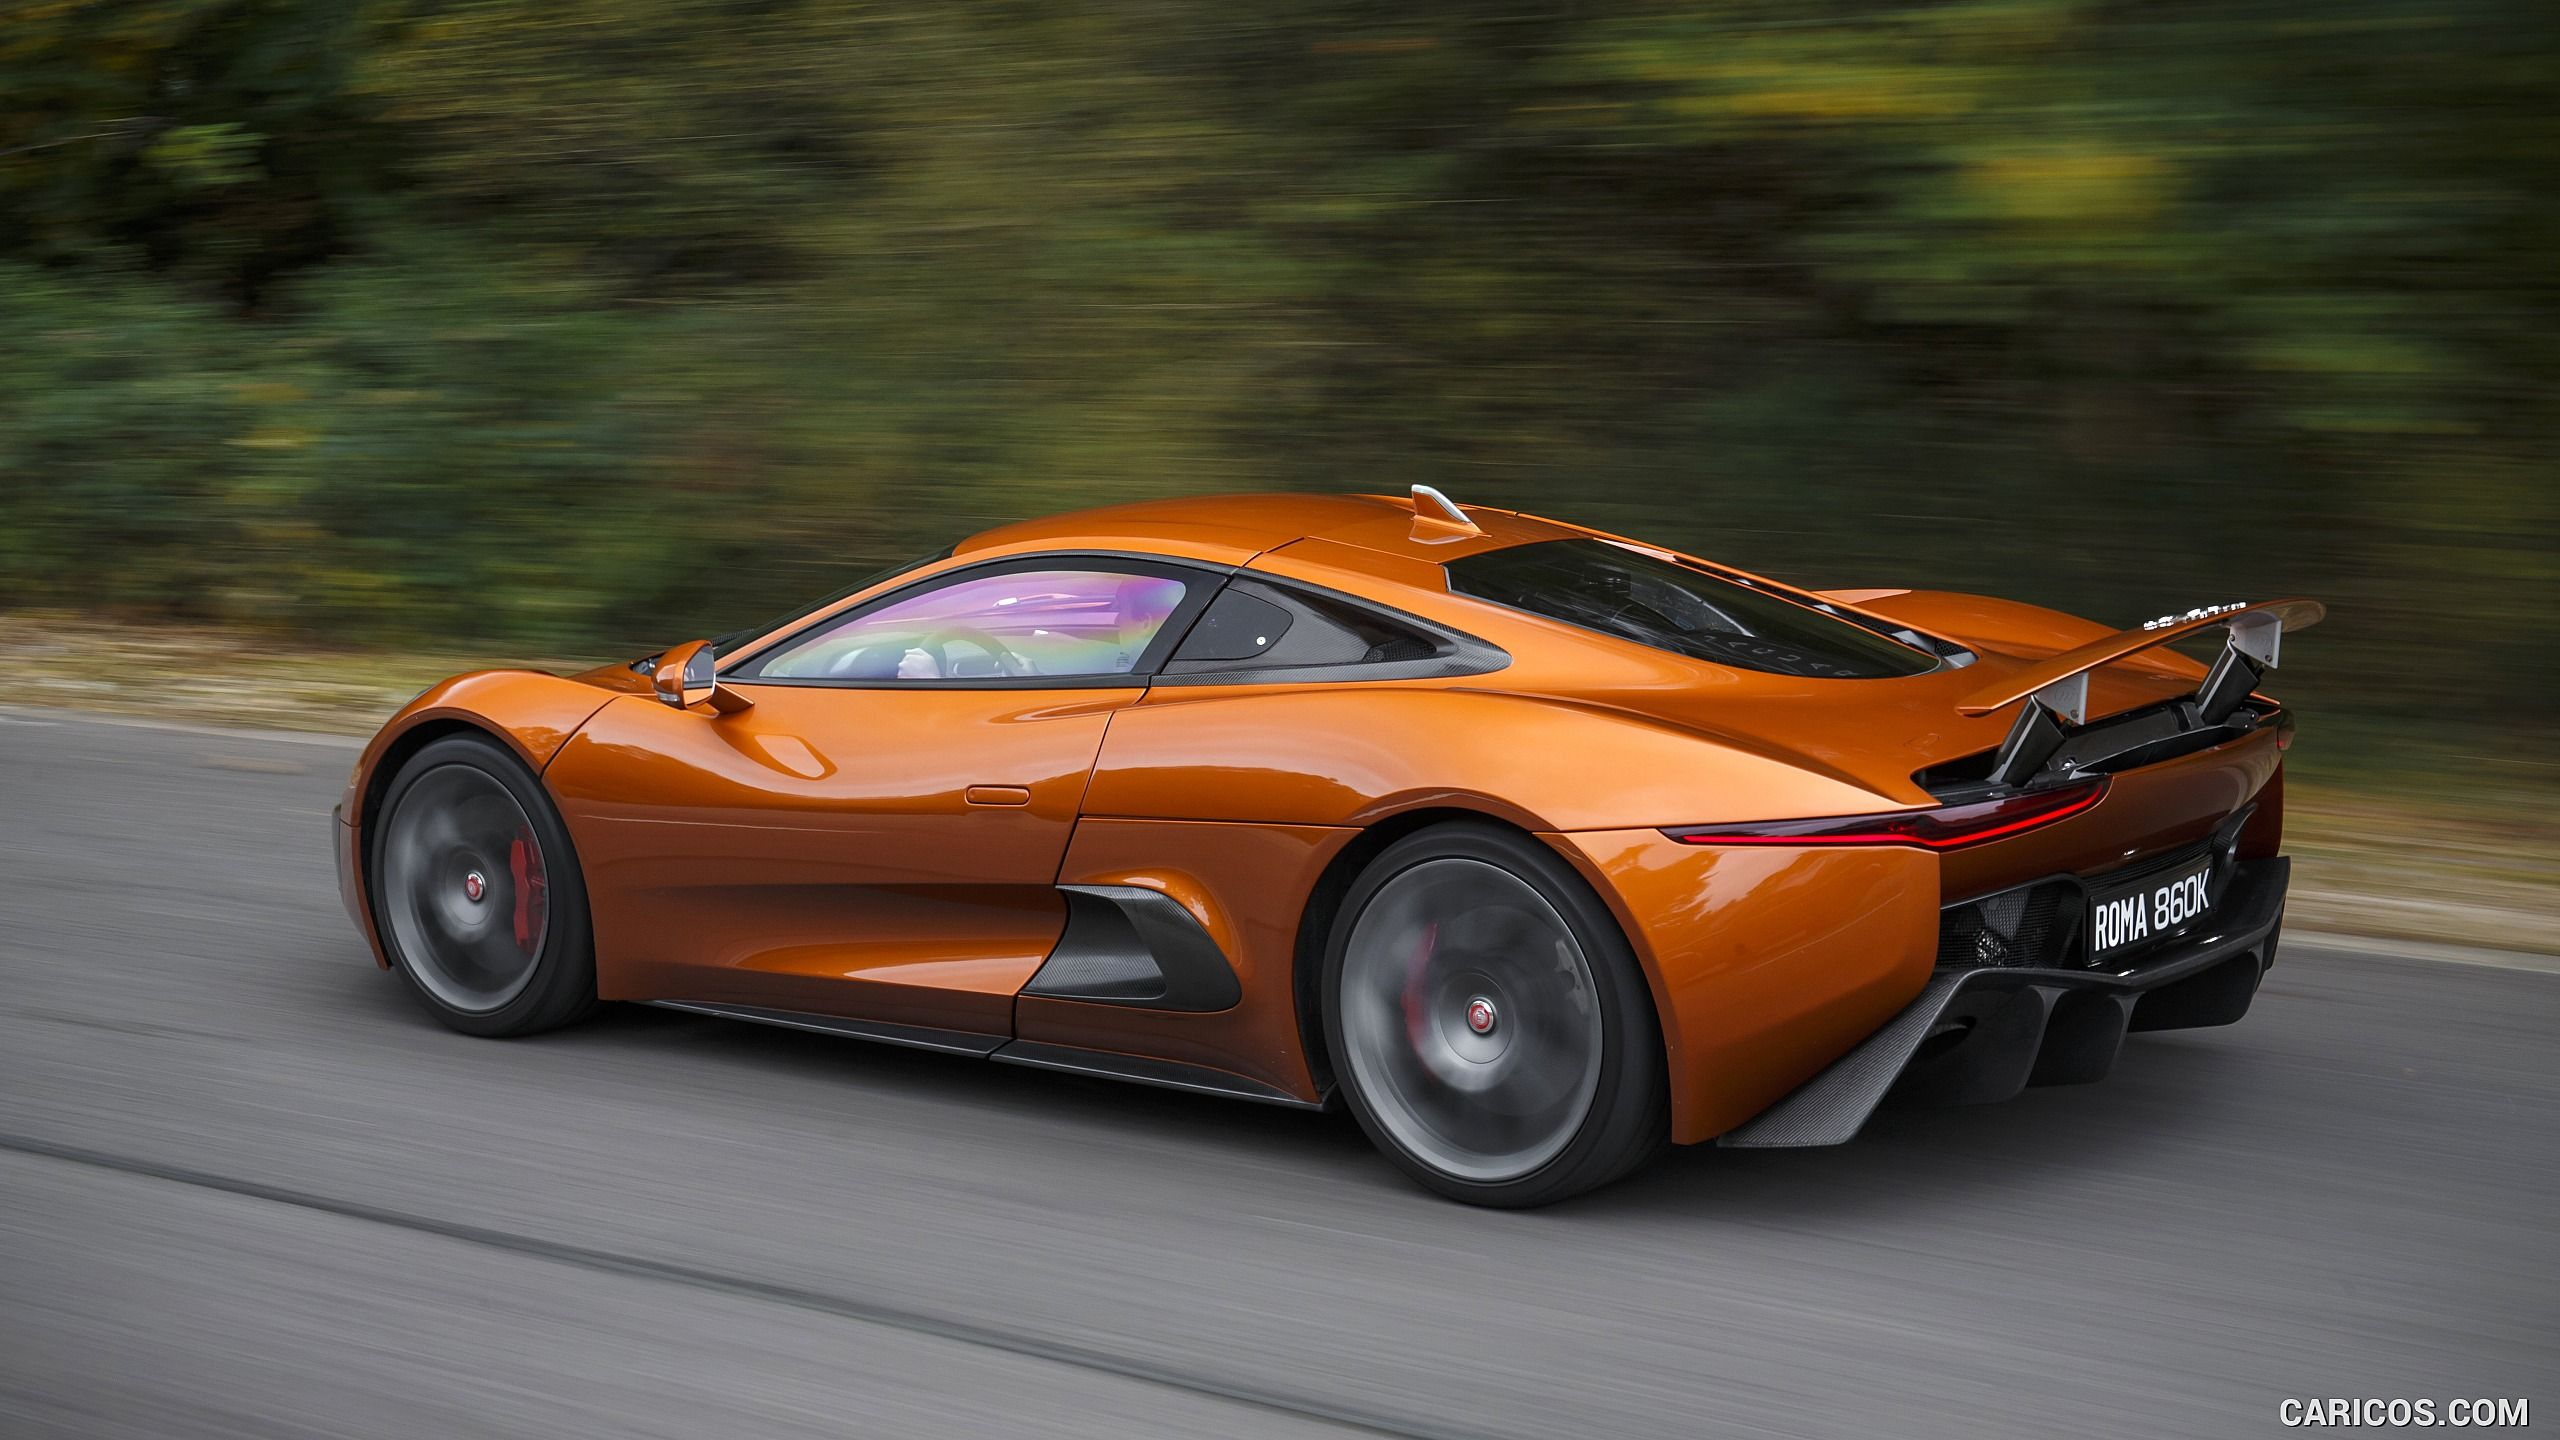 Genial 2019 Jaguar C X75 Review And Price U2013 The Oncoming Vehicle Of  Jaguar Will Probably